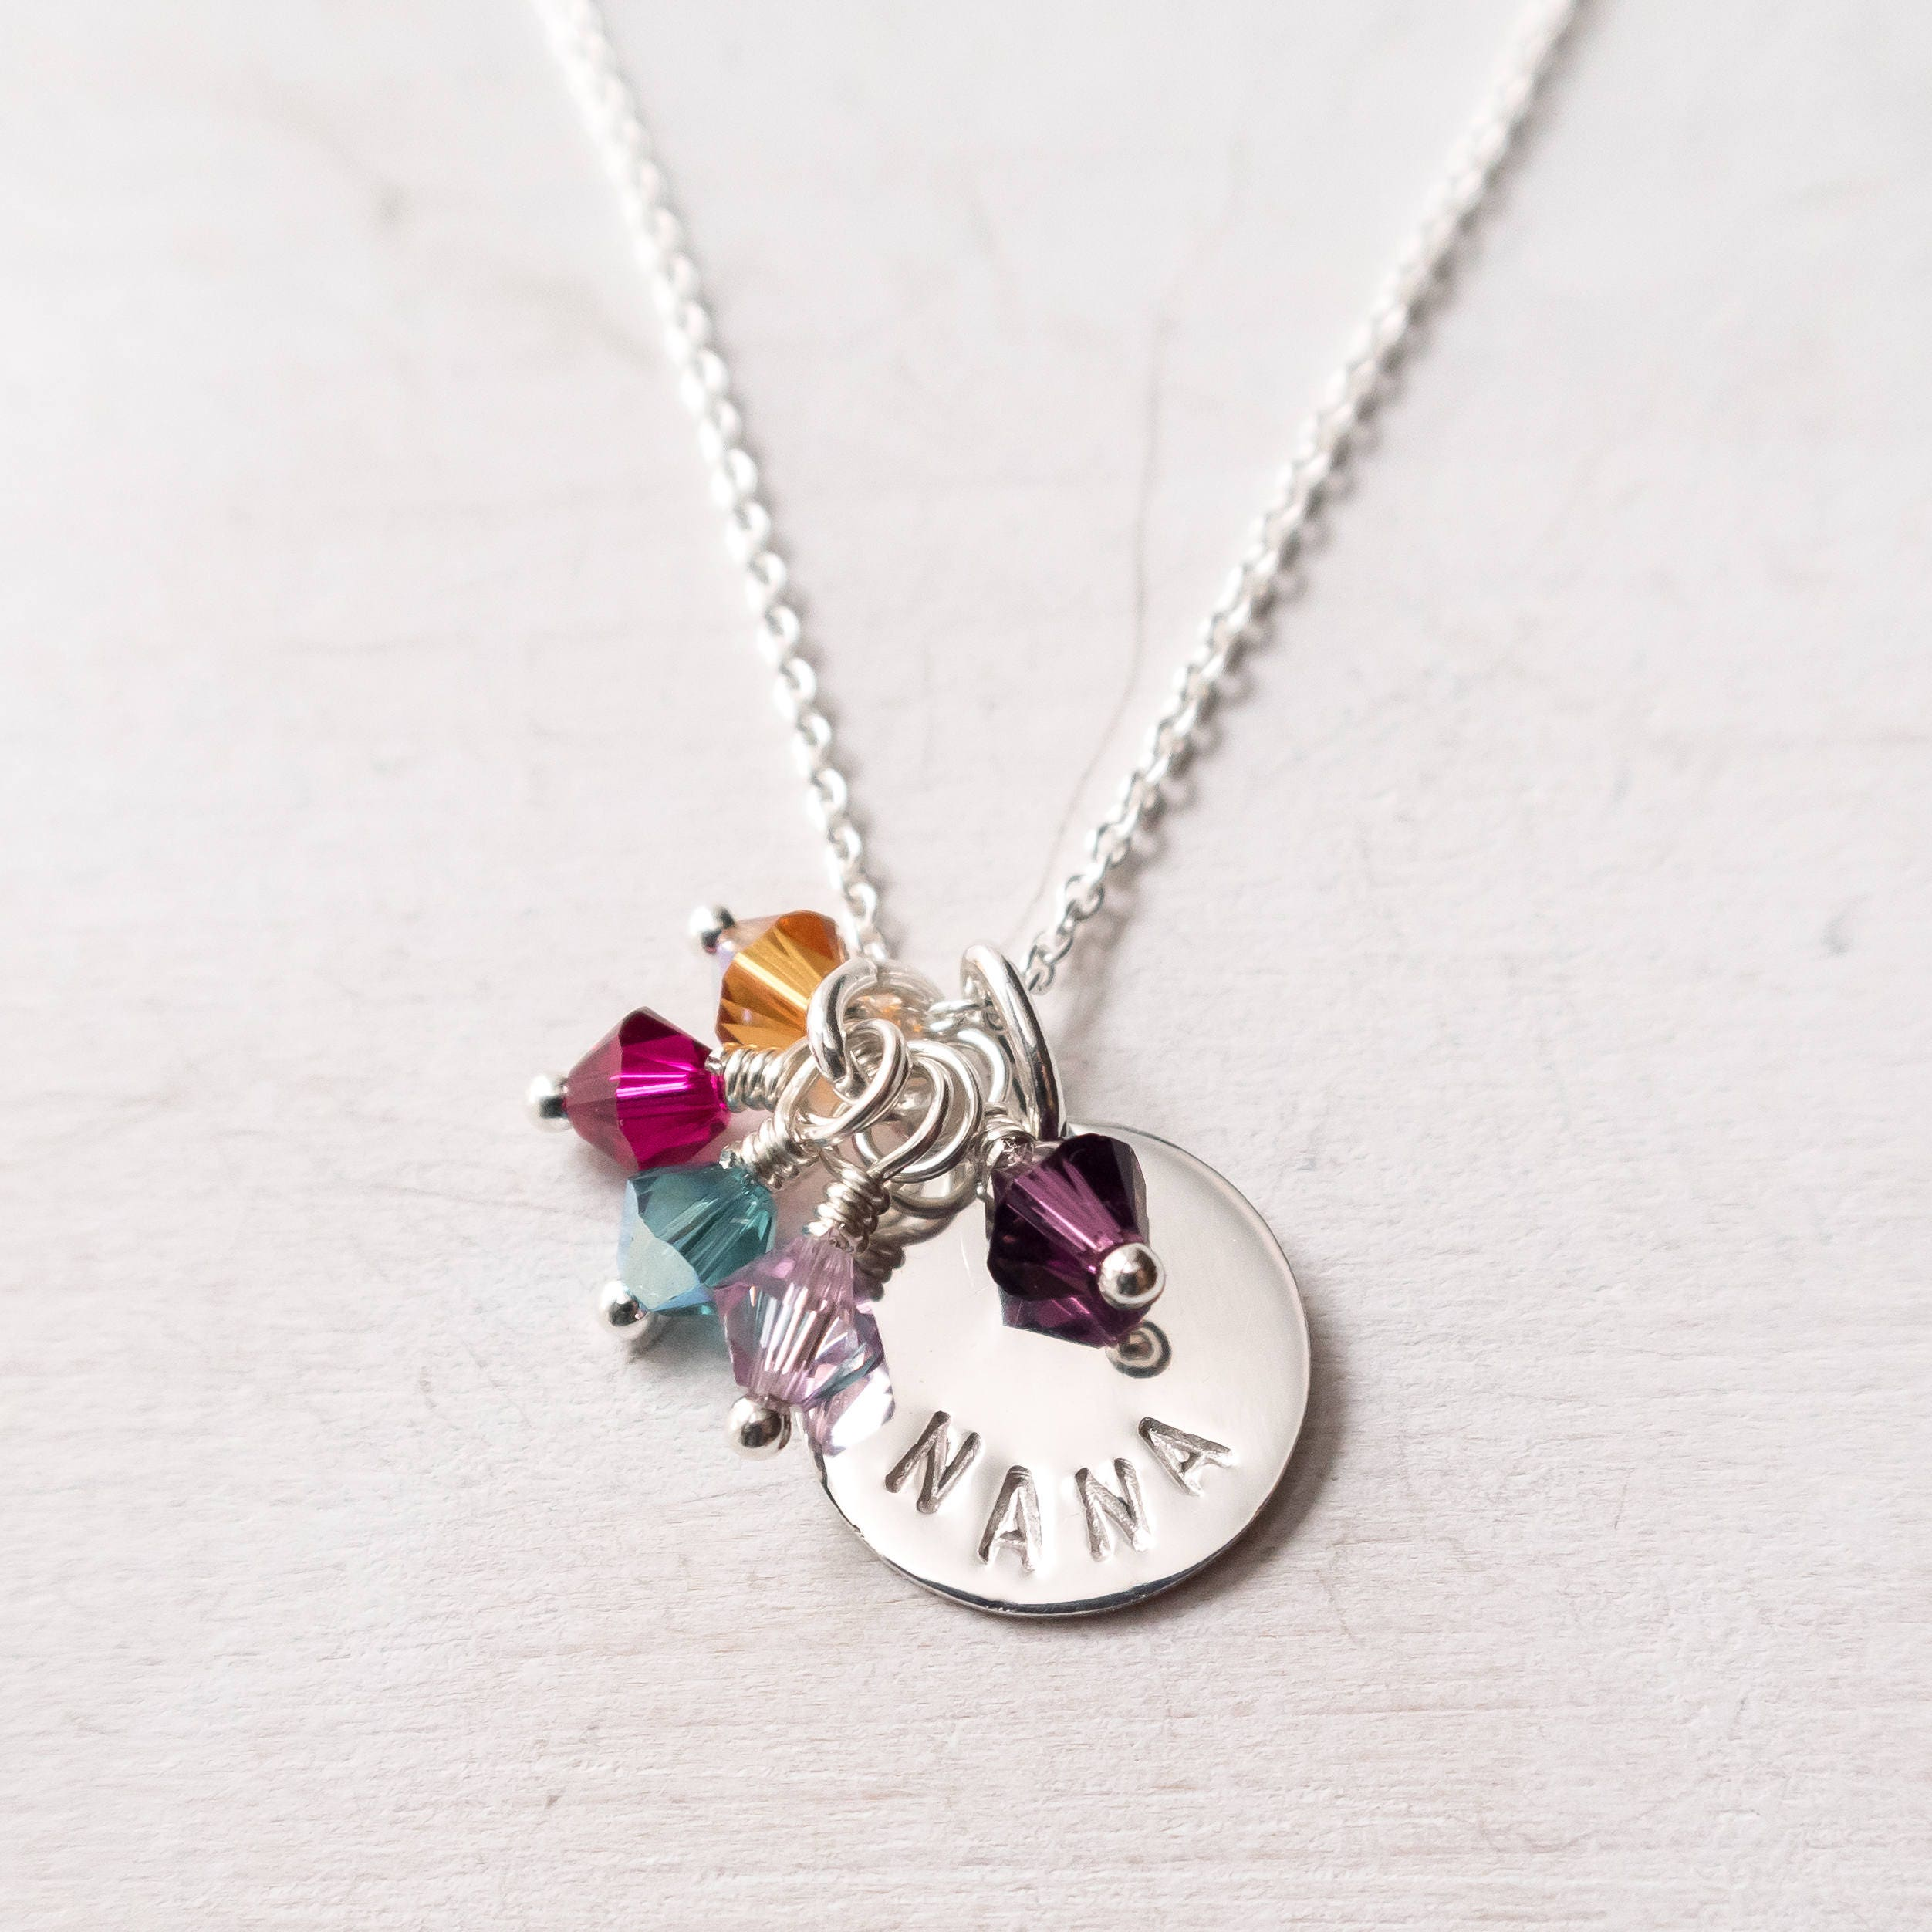 of grandkids necklace all mother the grandma grandkid my birthstones silver gold birthstone with locket pin s